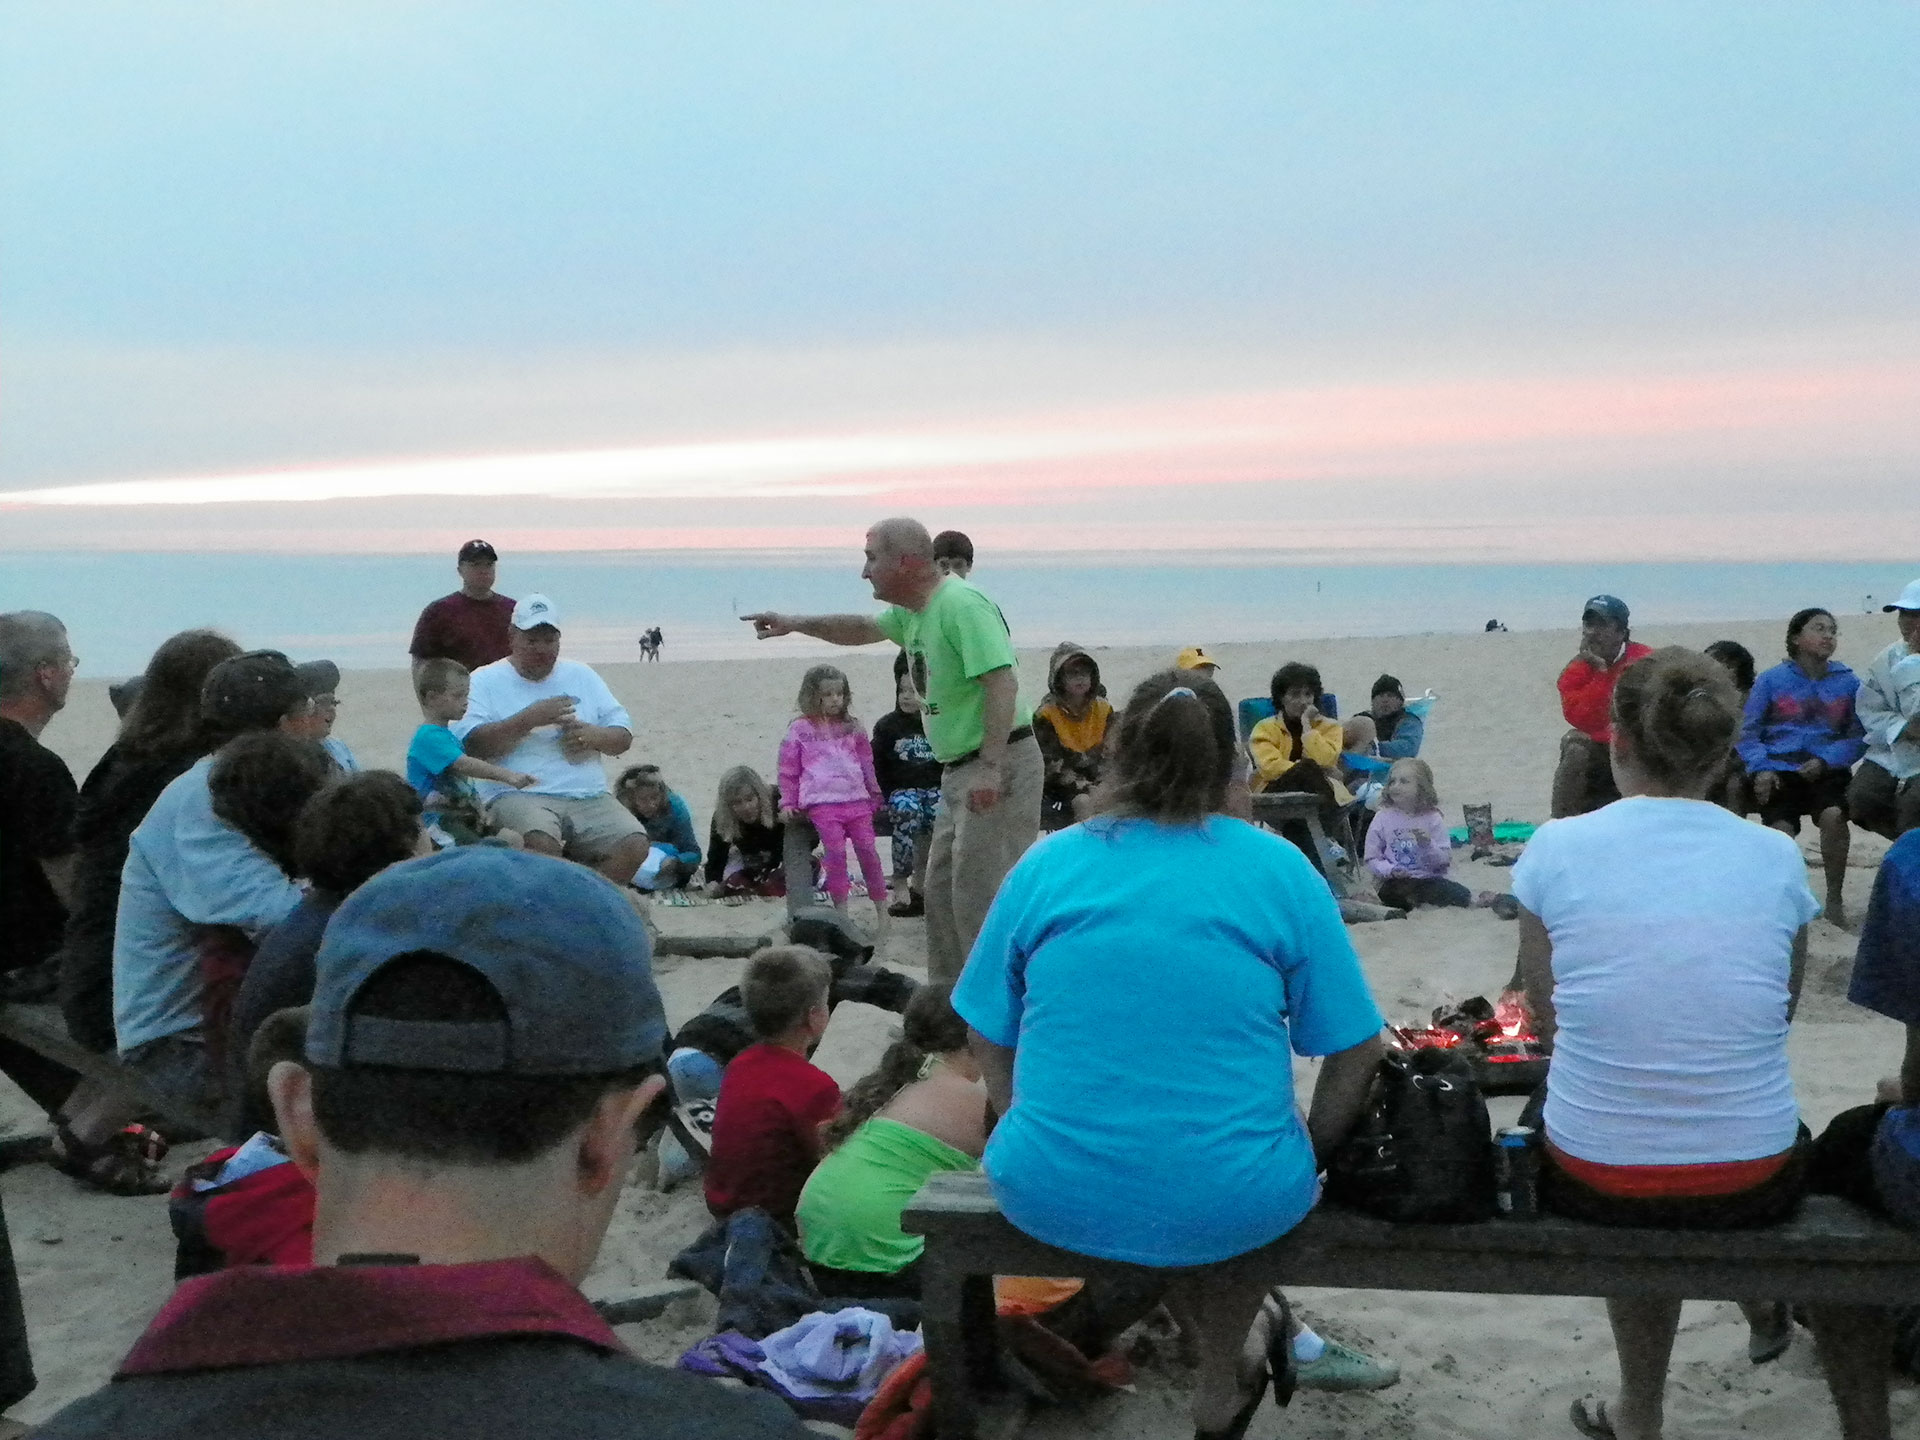 Michigan state parks act as summer classrooms